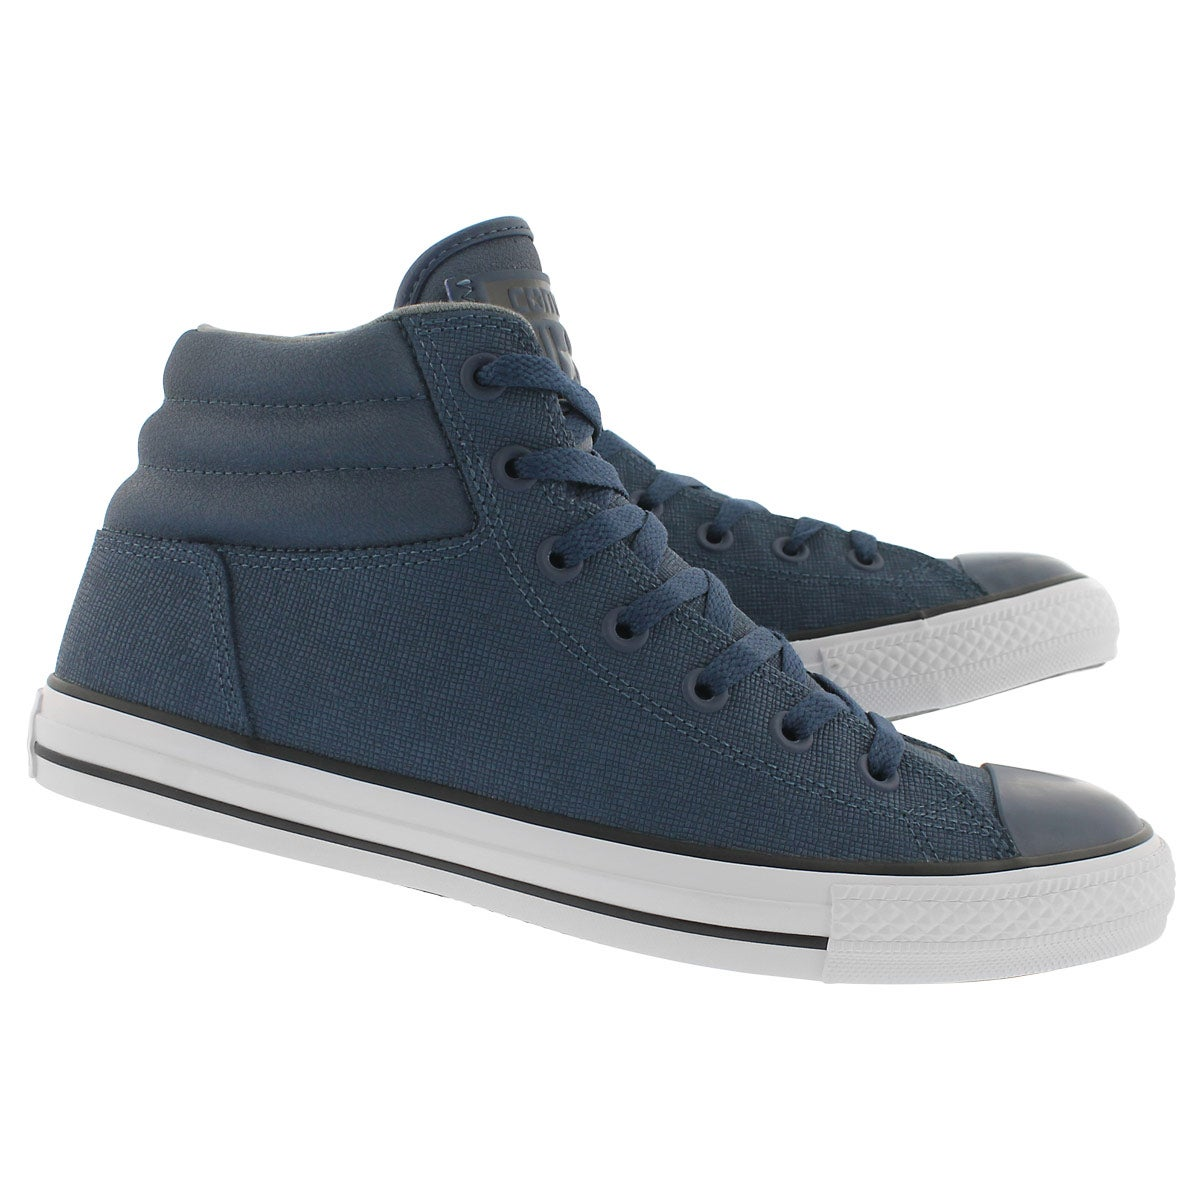 Mns CT A/S Fresh navy hi top sneaker